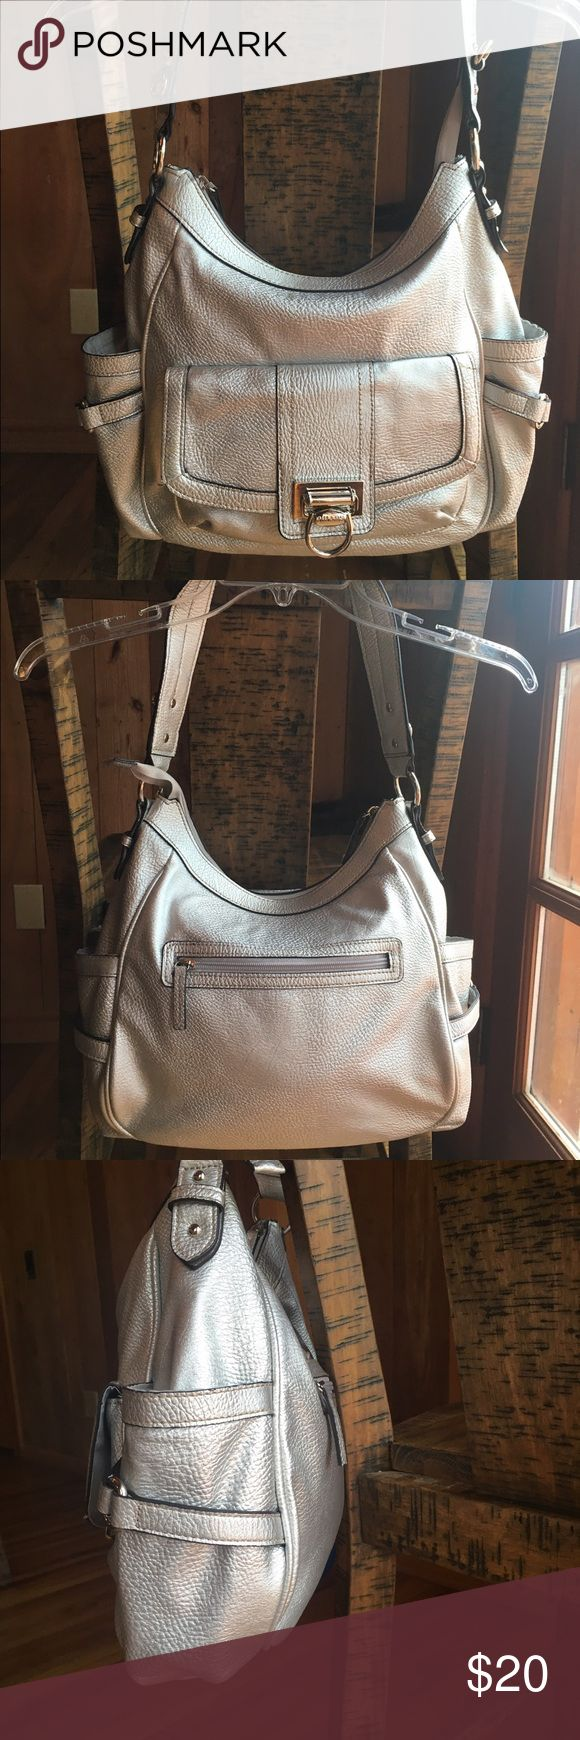 CHAPS Silver Shoulder Bag Chaps Silver shoulder bag.Lot  of storage inside,back zip pockets,and side pockets.In good condition.Came from a smoke and pet free home. Chaps Bags Shoulder Bags